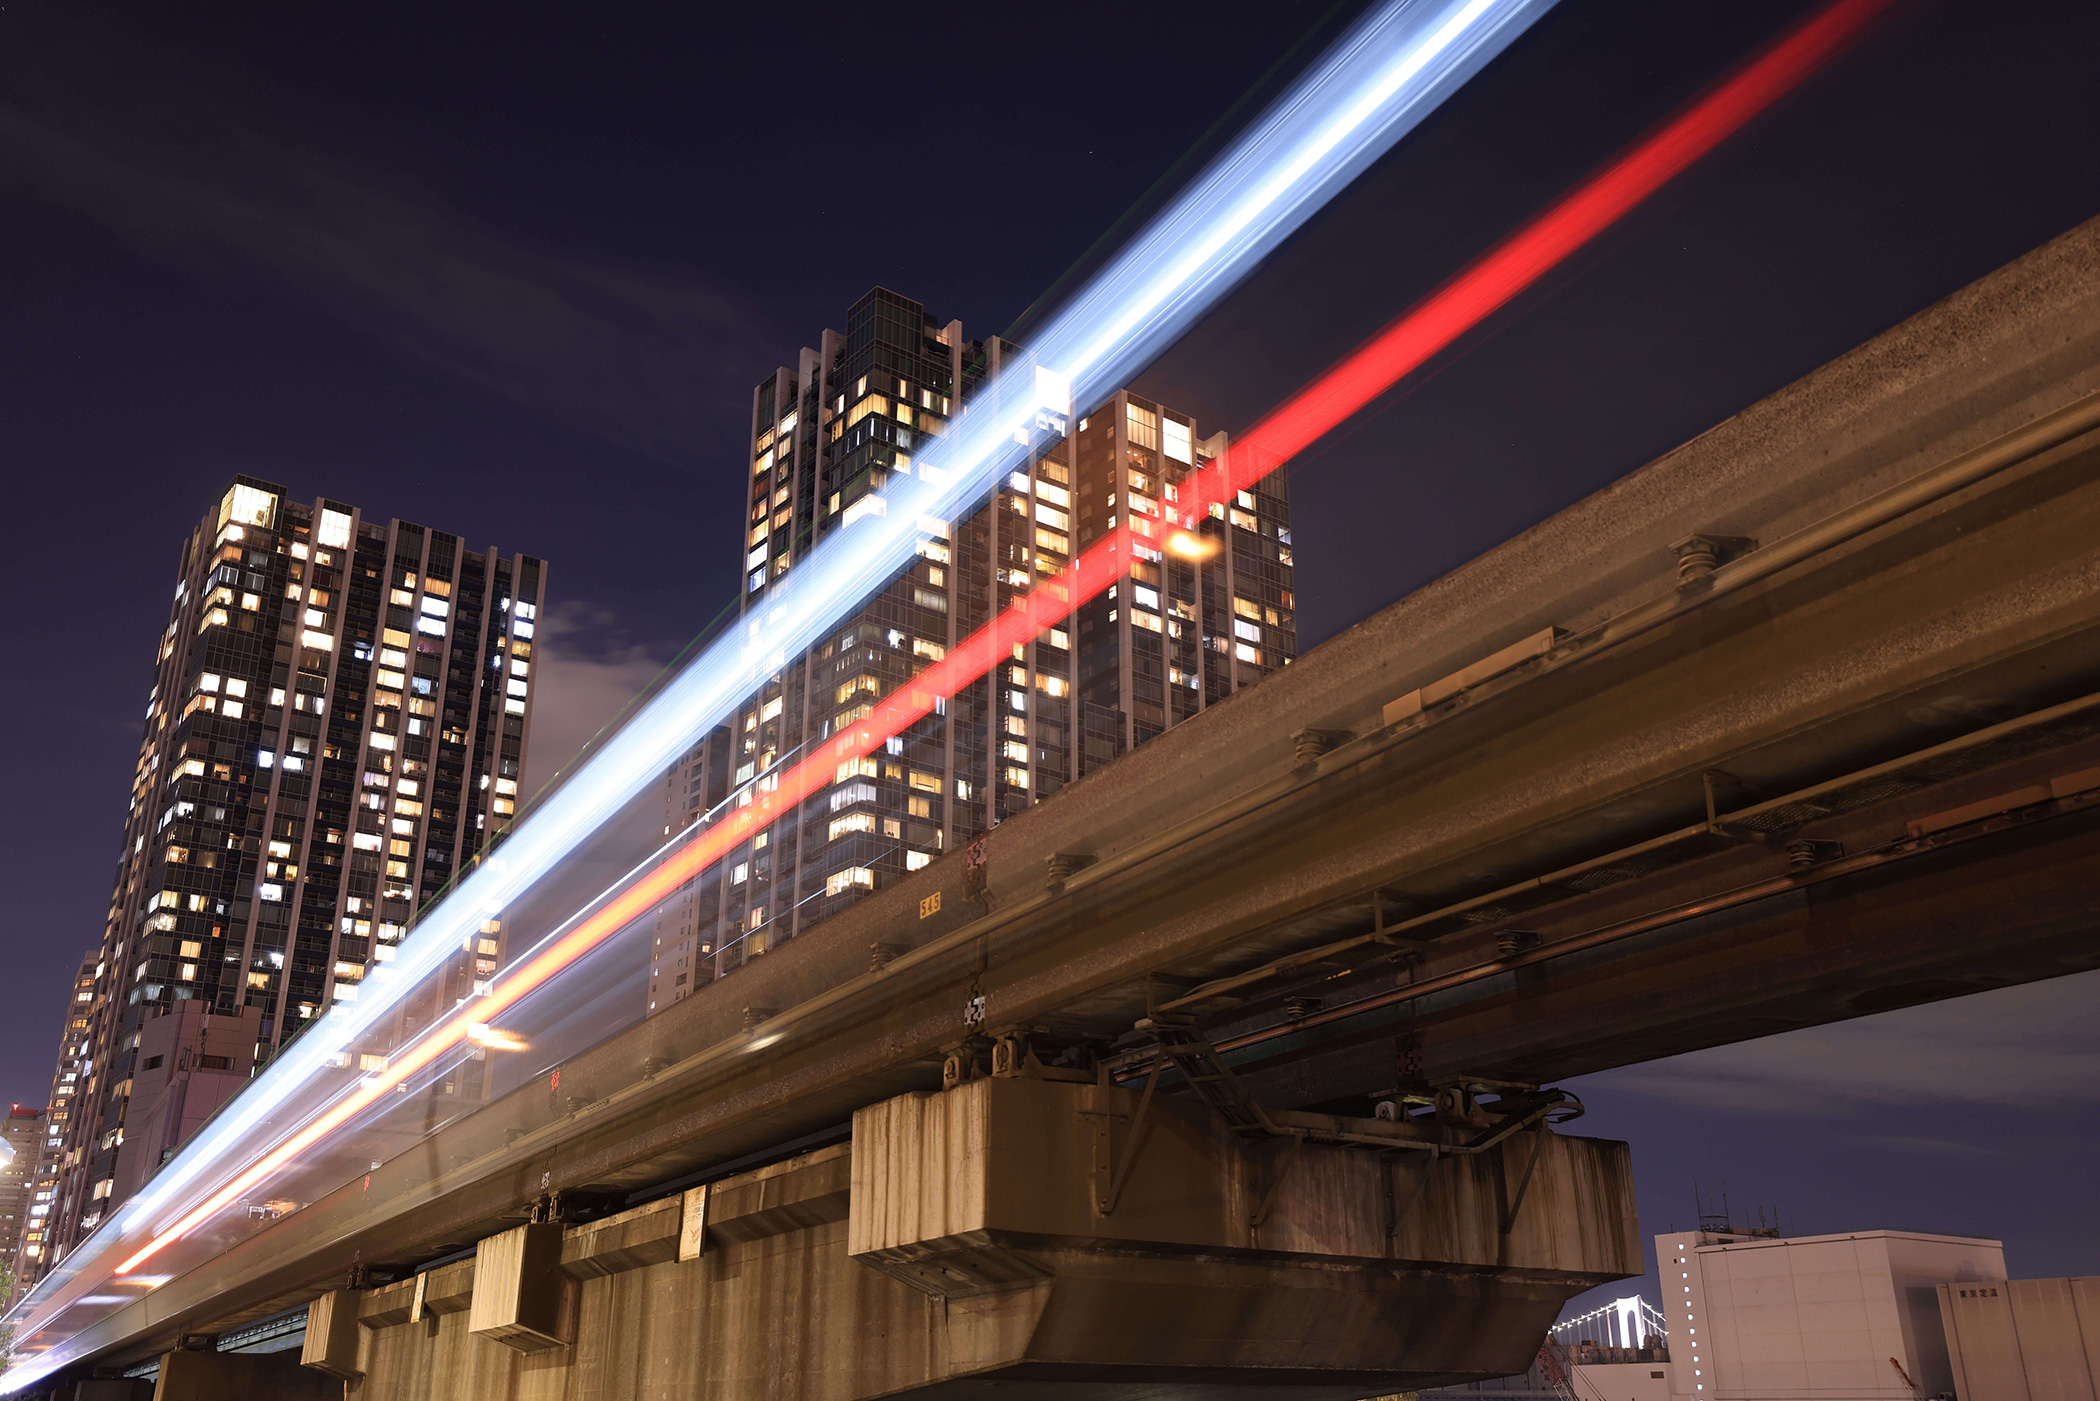 Light trails above an elevated concrete bridge with lit-up high rises in the background, photographed with the Canon EOS R5